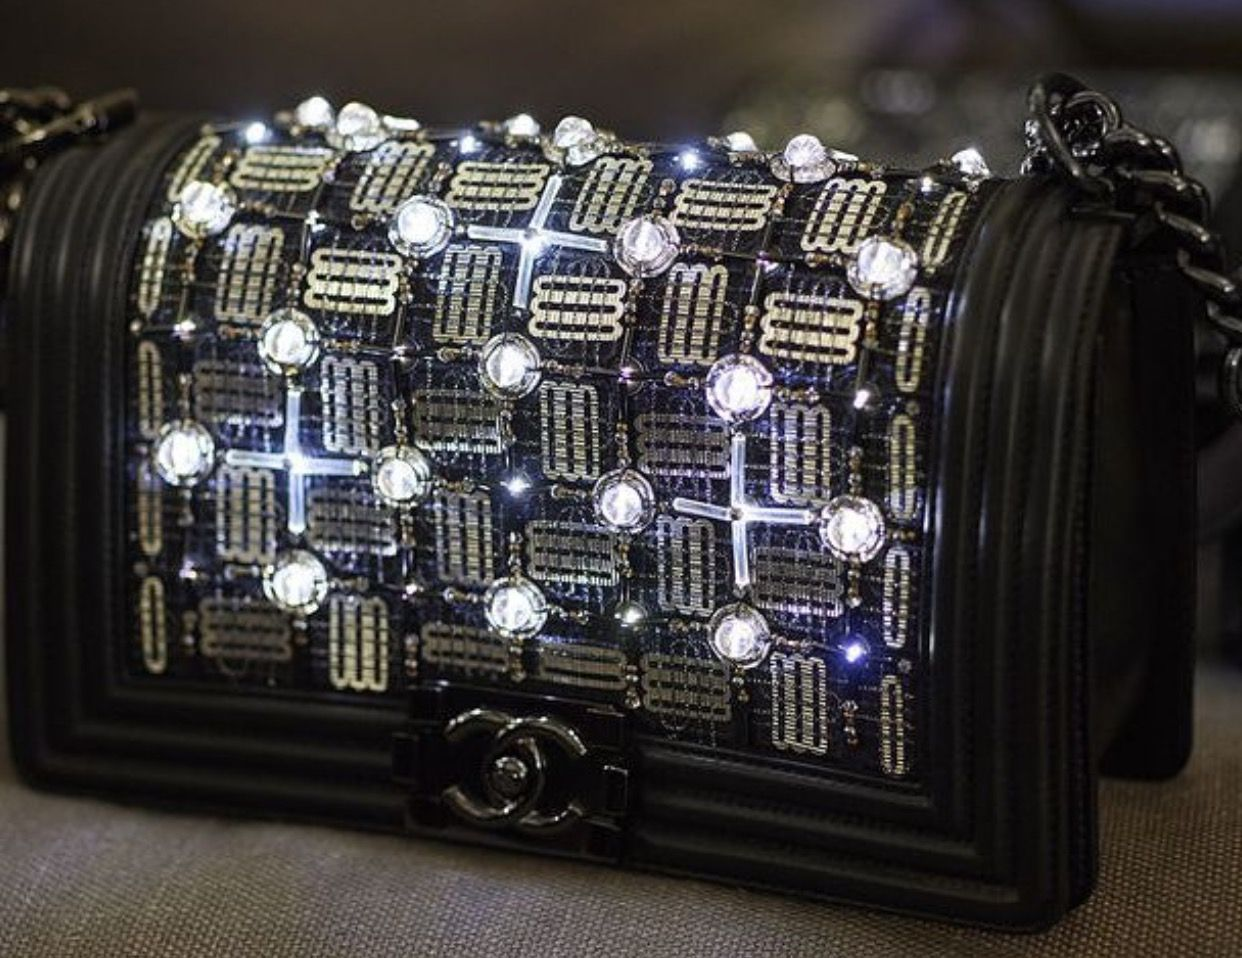 c9c71c6142de Chanel Data Center LED handbag #ChanelDataCenter | Research Board in ...